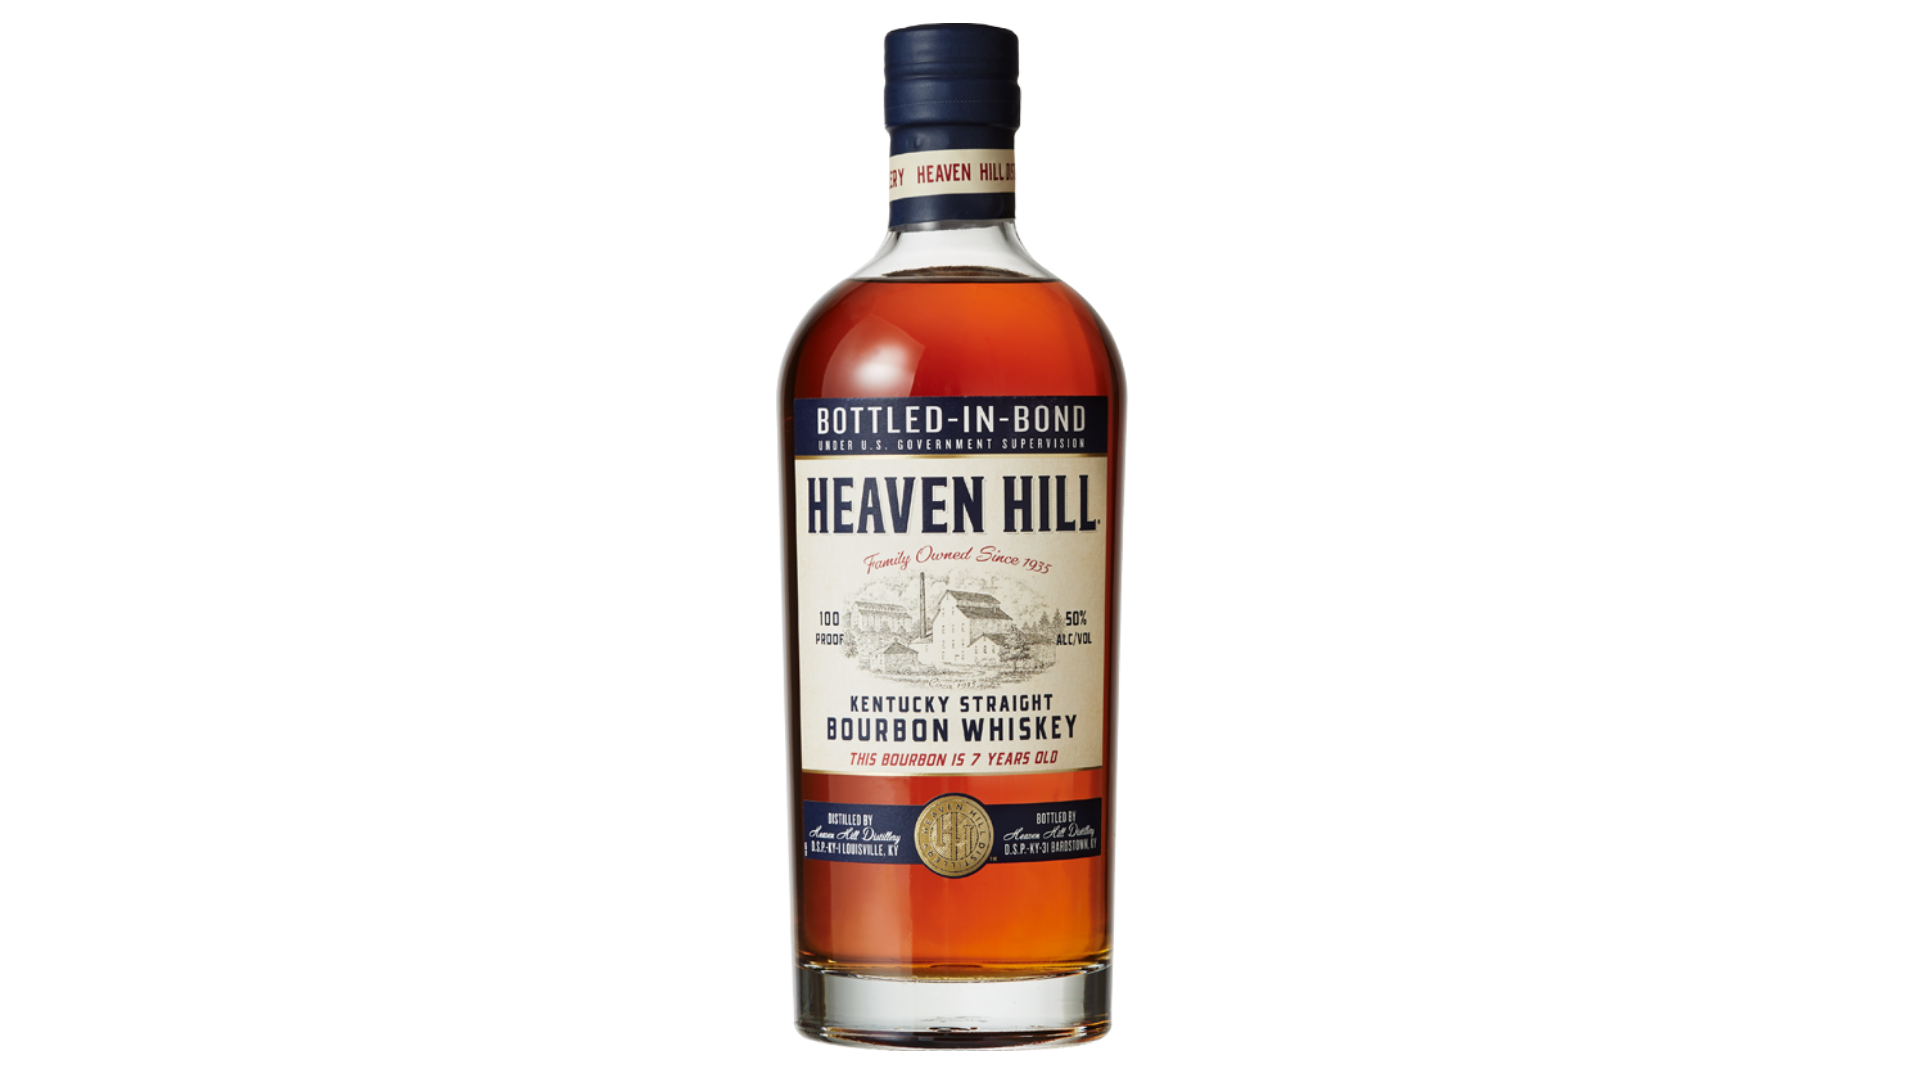 Old Heaven Hill Bottled in Bond